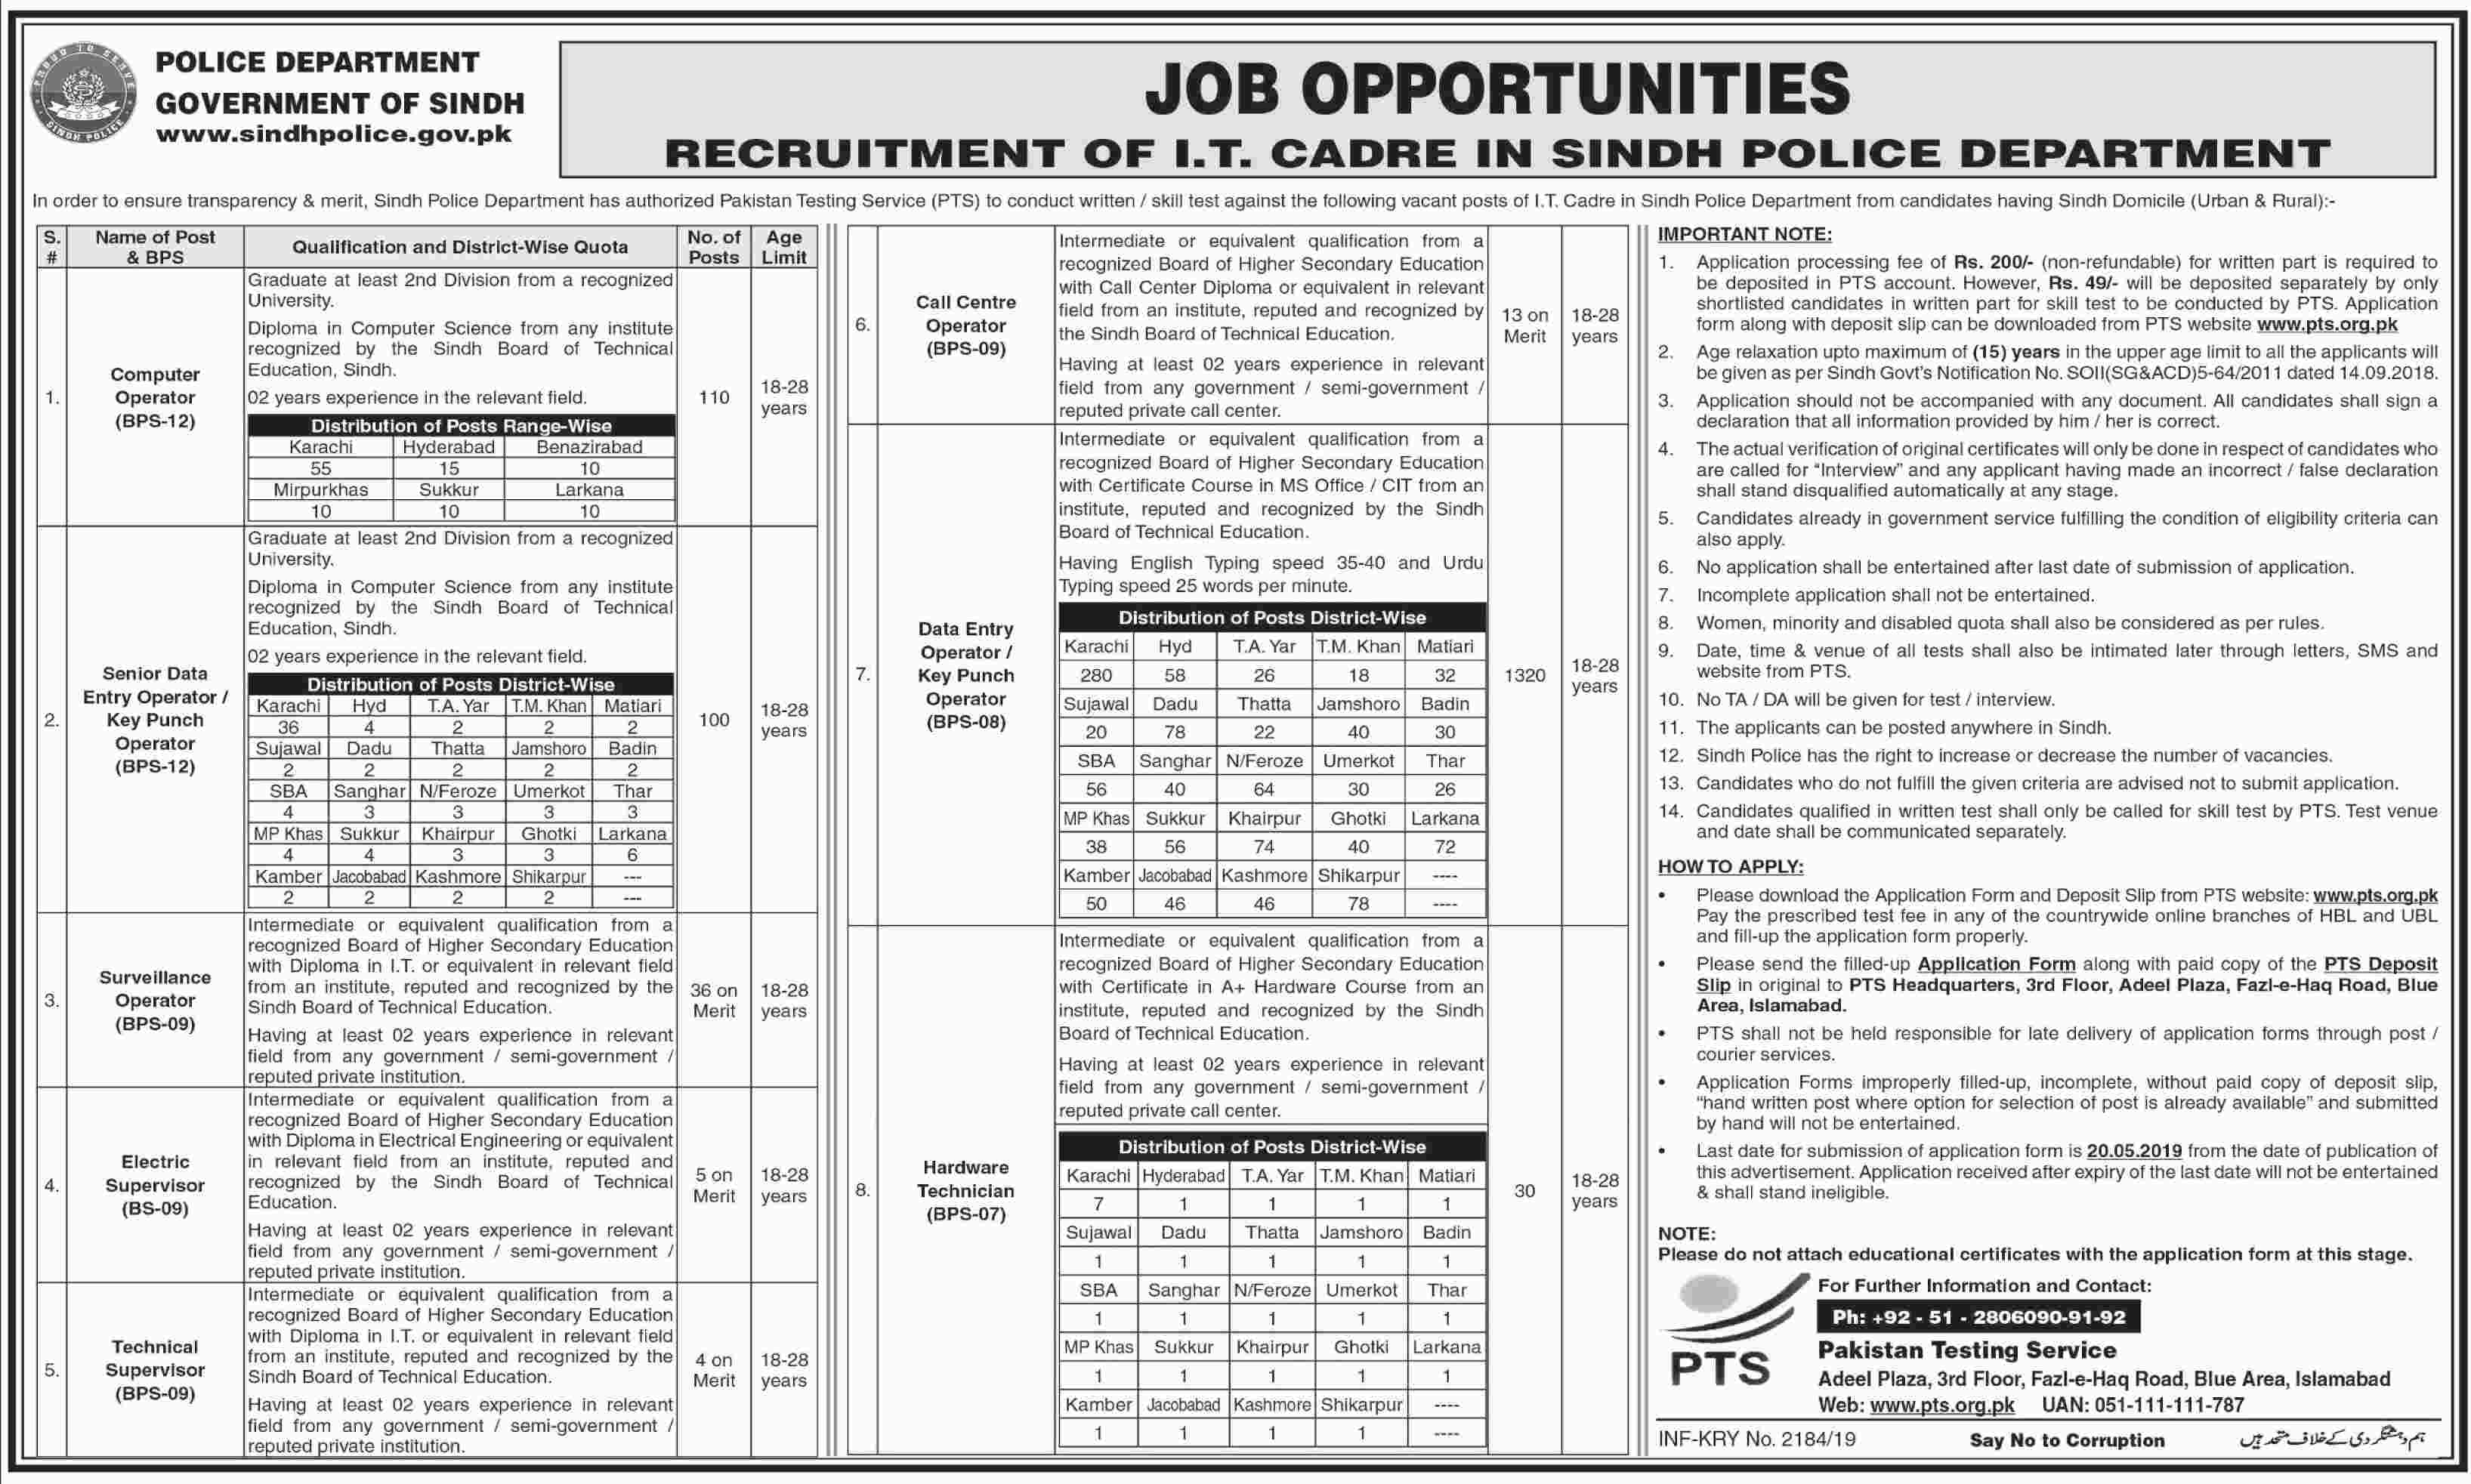 Sindh Police Department Information Technology Cadre PTS Jobs 2019 Application Form Roll No Slips